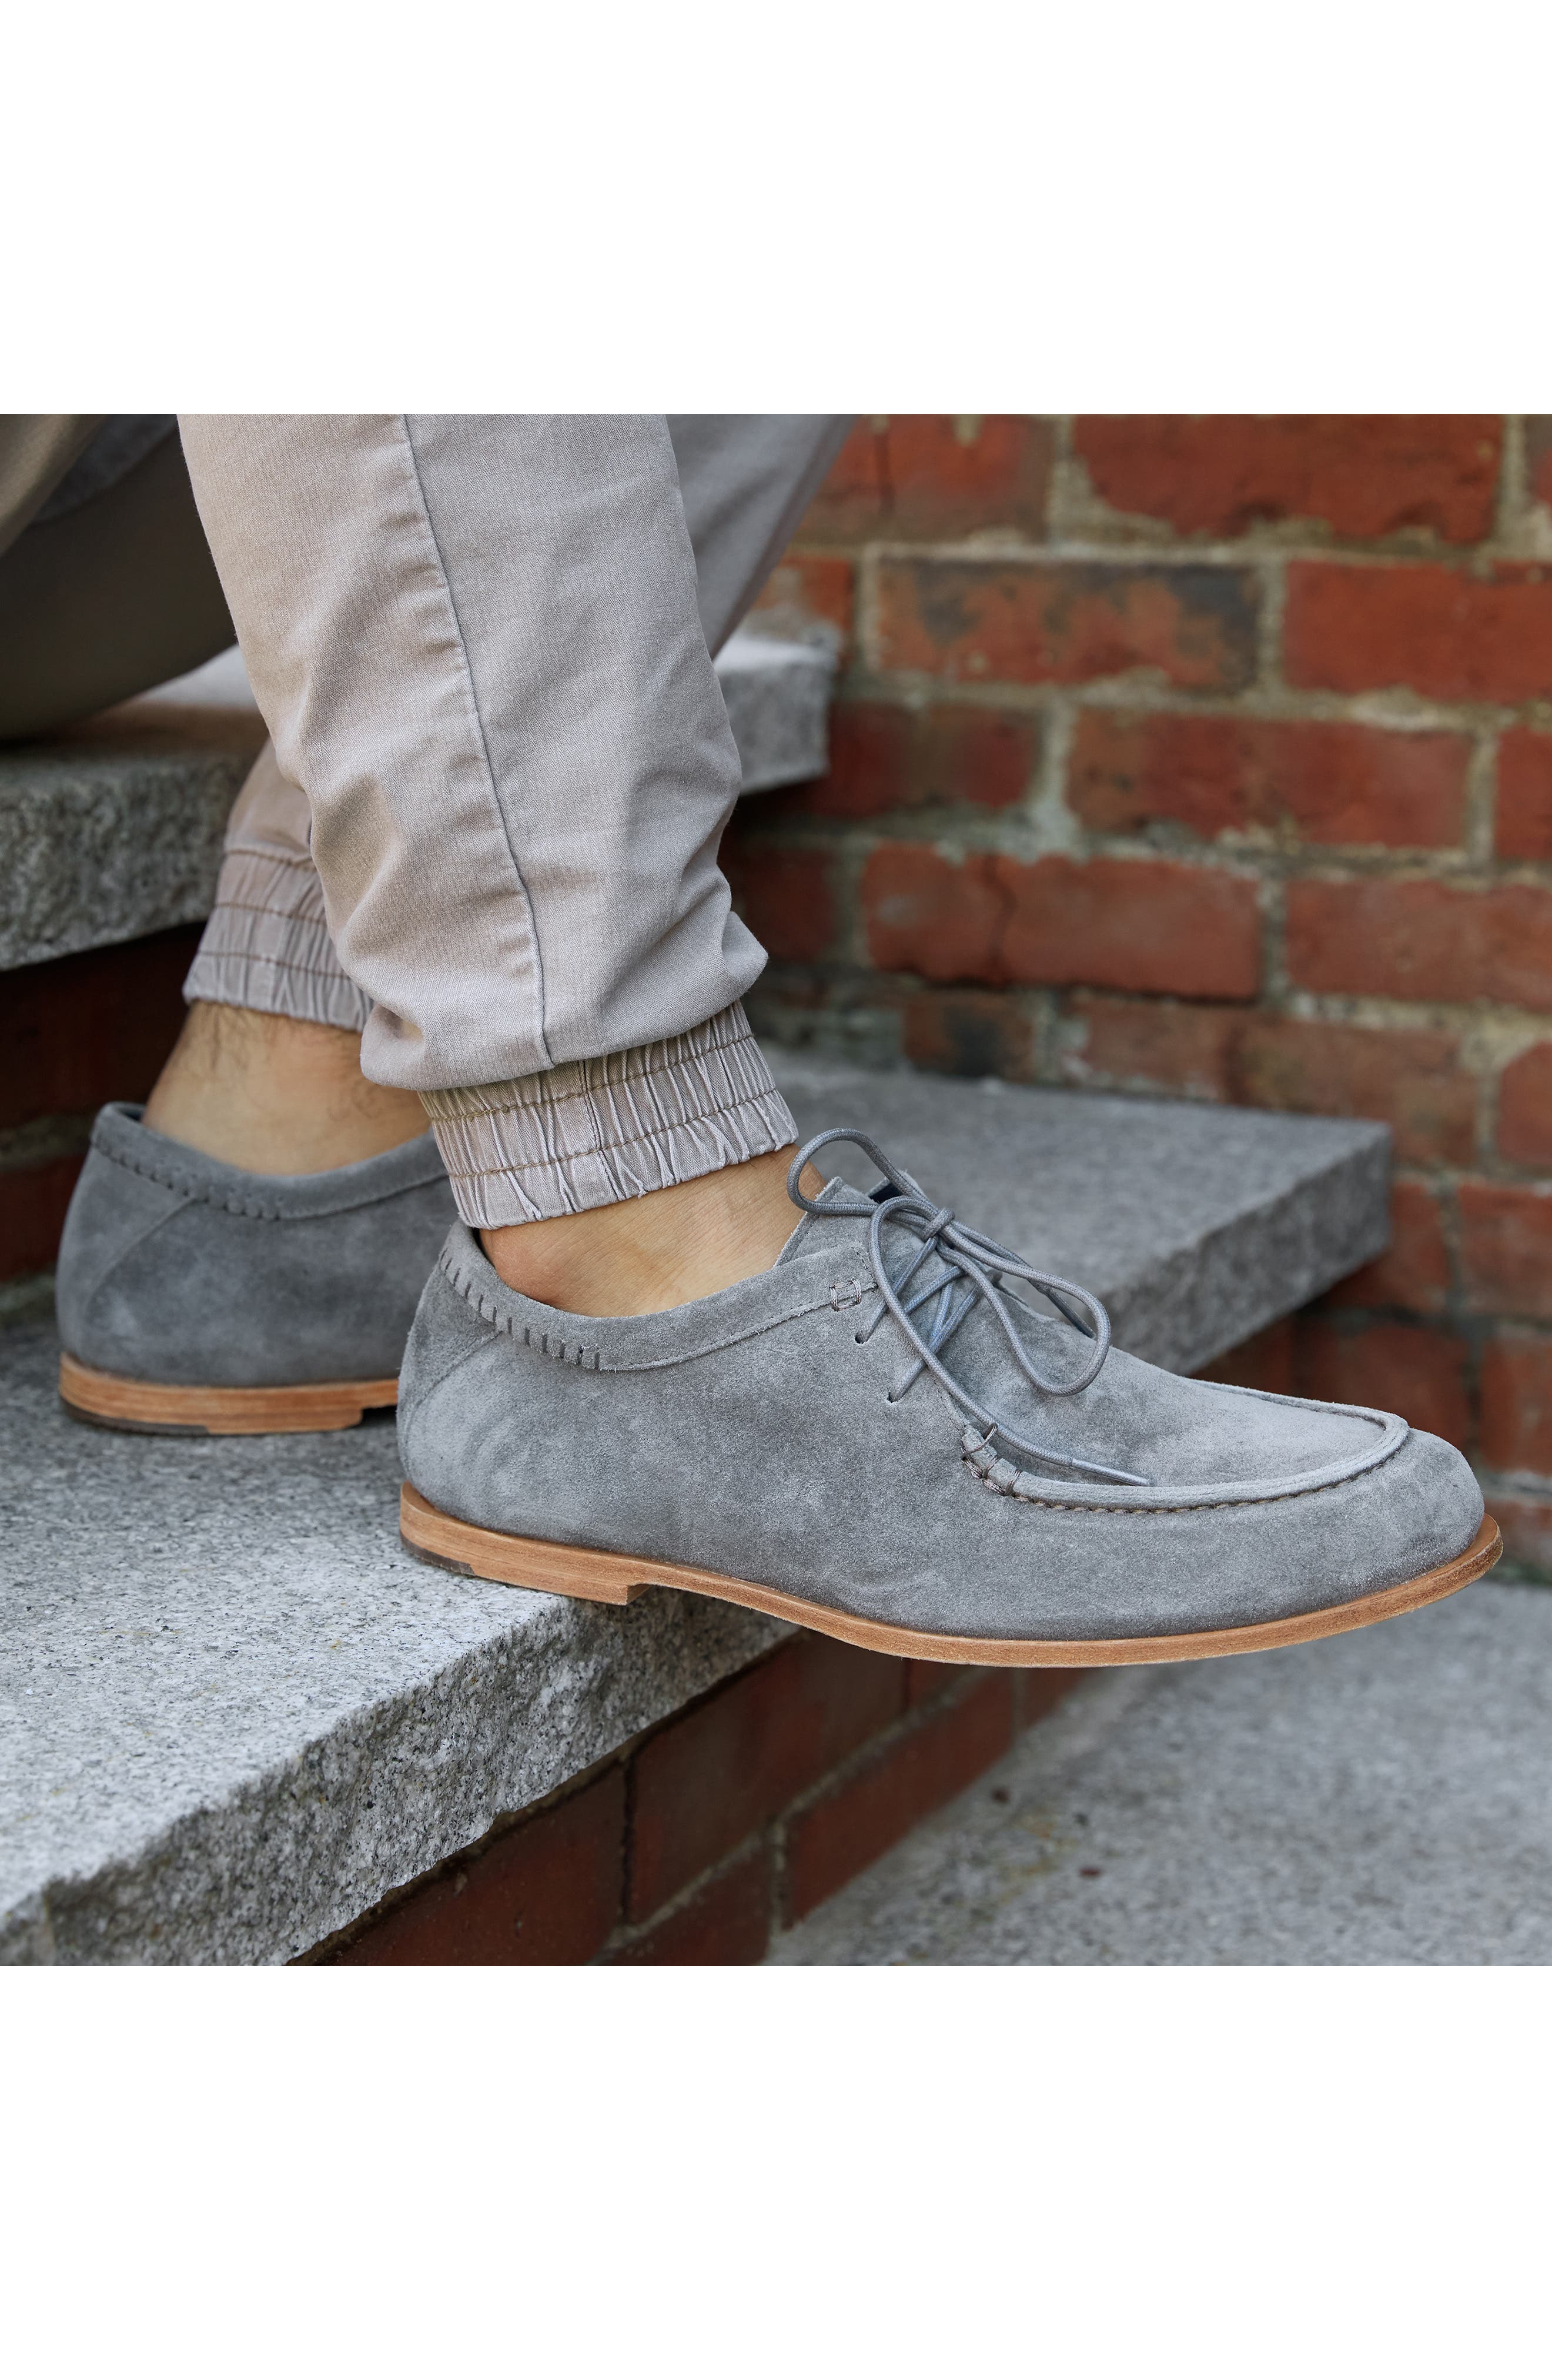 Tauk Point Moc Toe Derby,                             Alternate thumbnail 6, color,                             GREY SUEDE